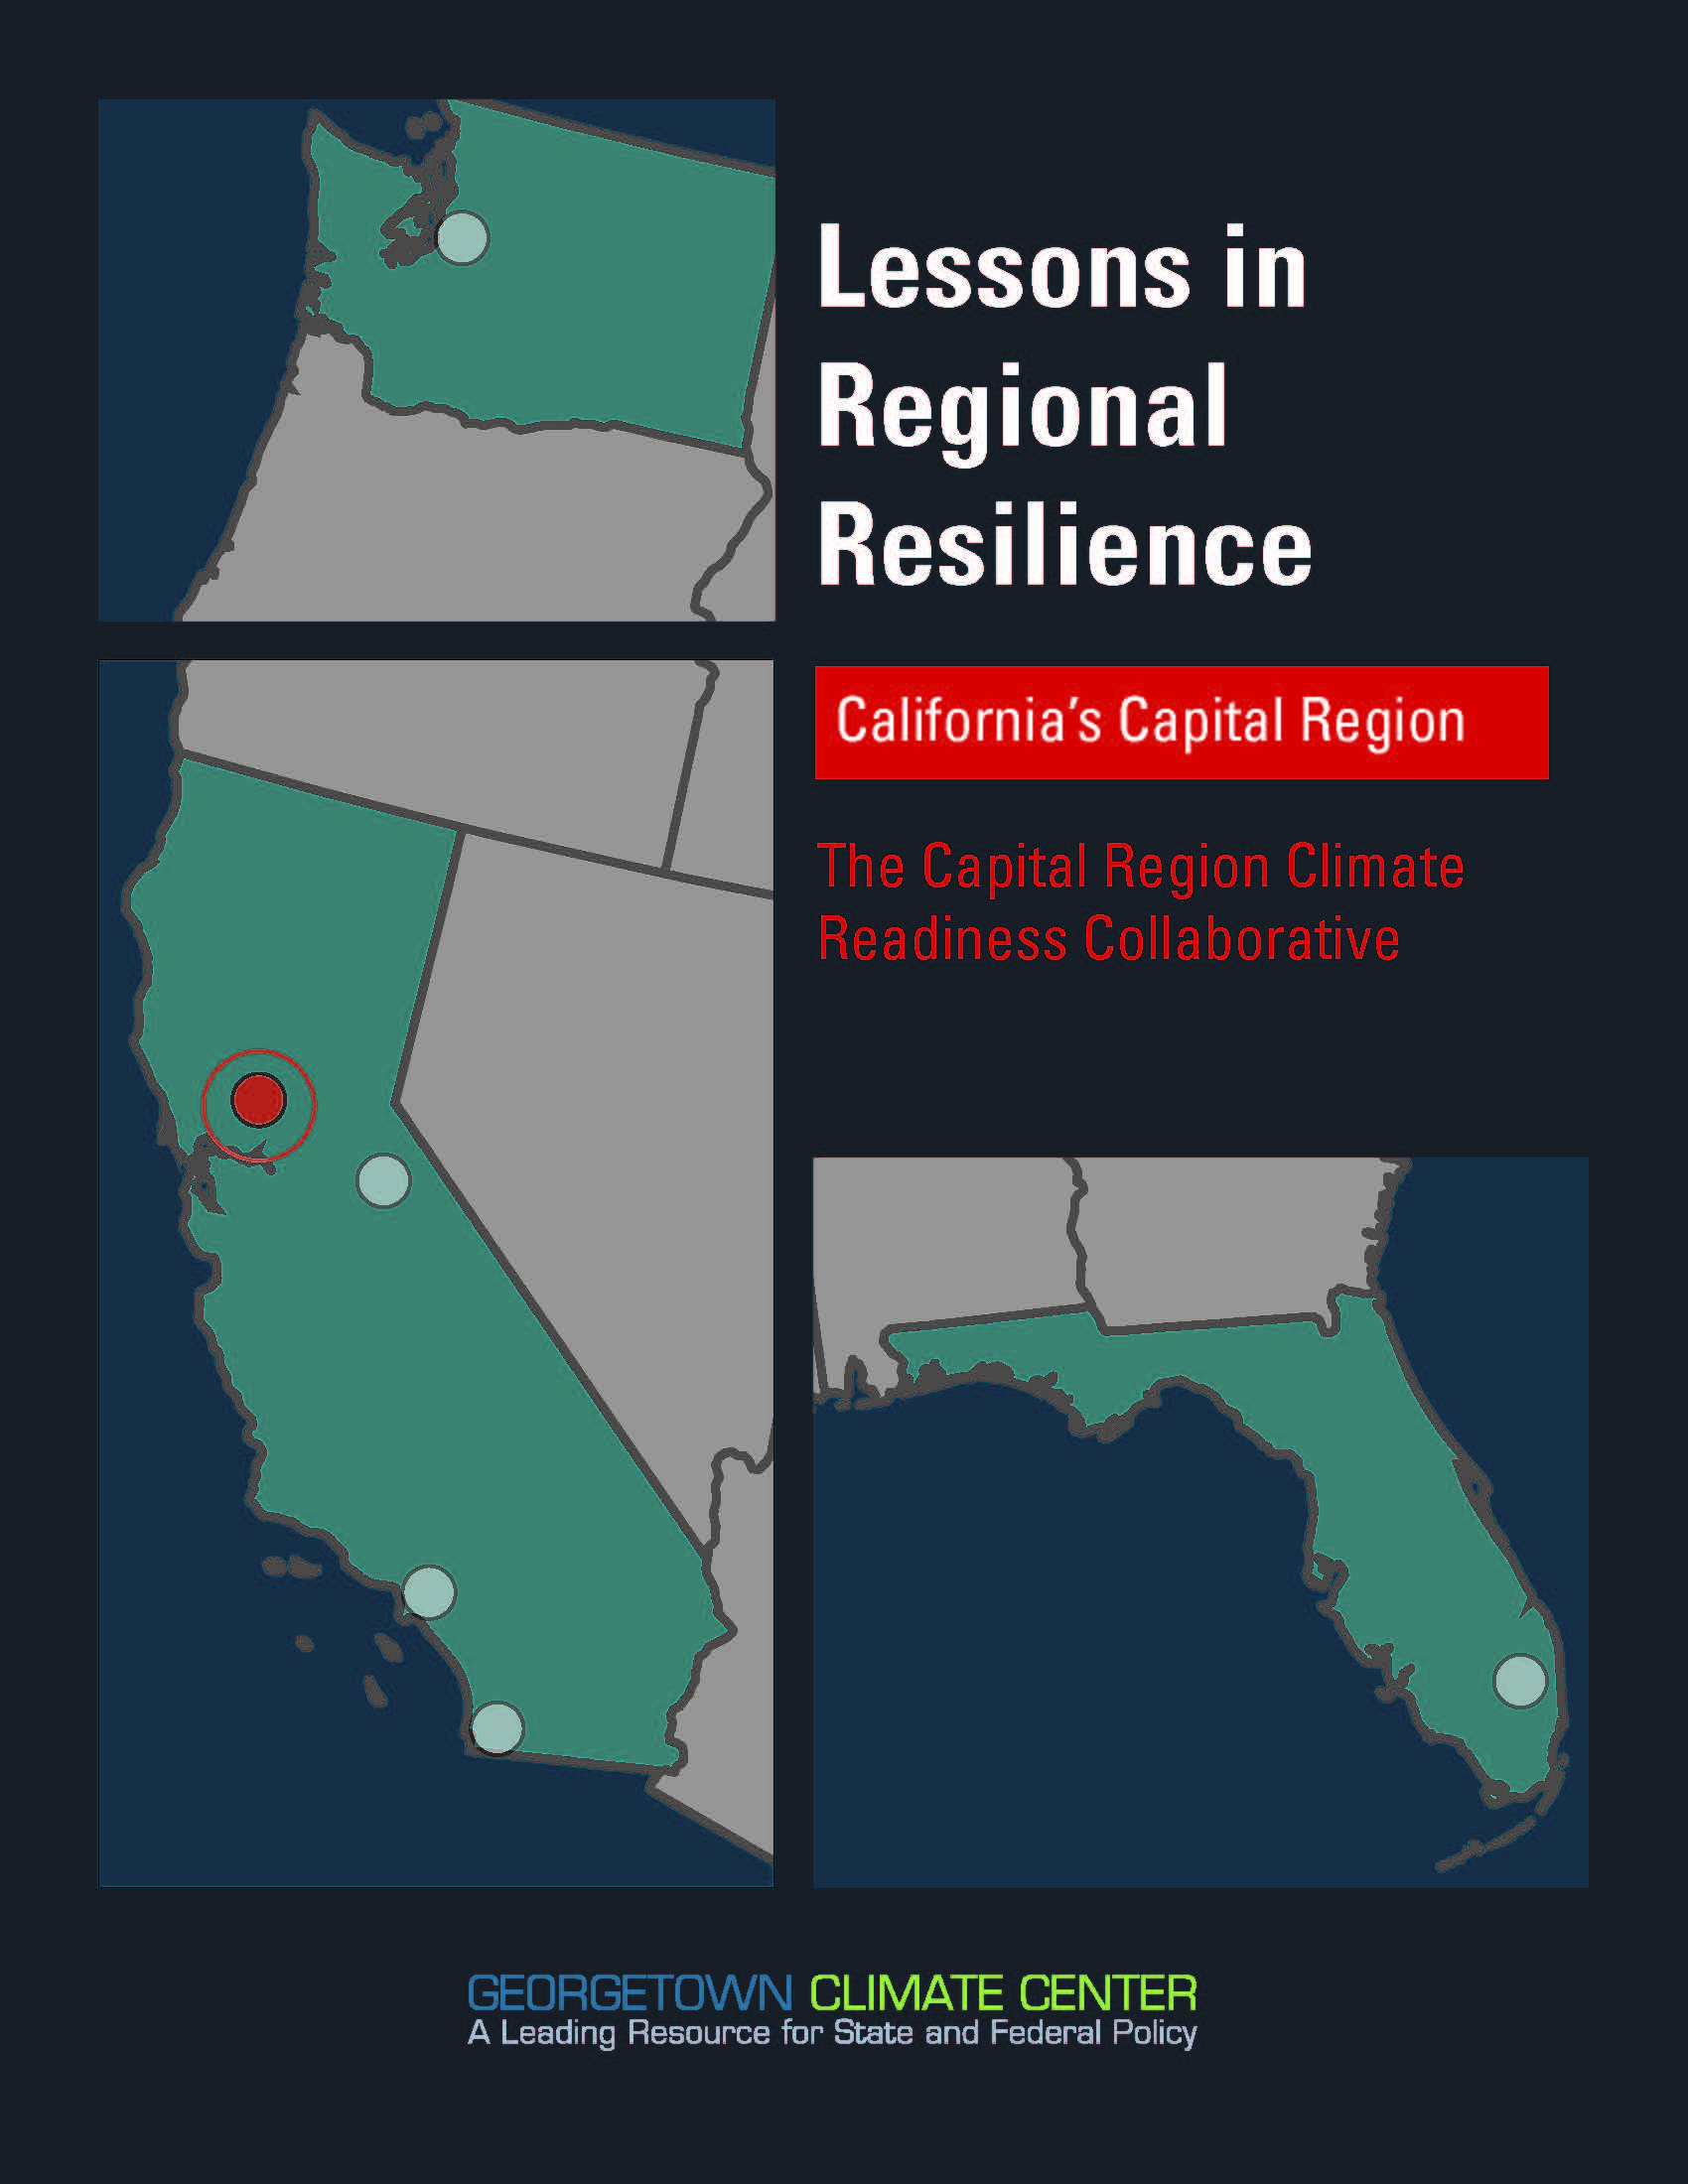 Lessons in Resilience: The Capital Region Climate Readiness Collaborative